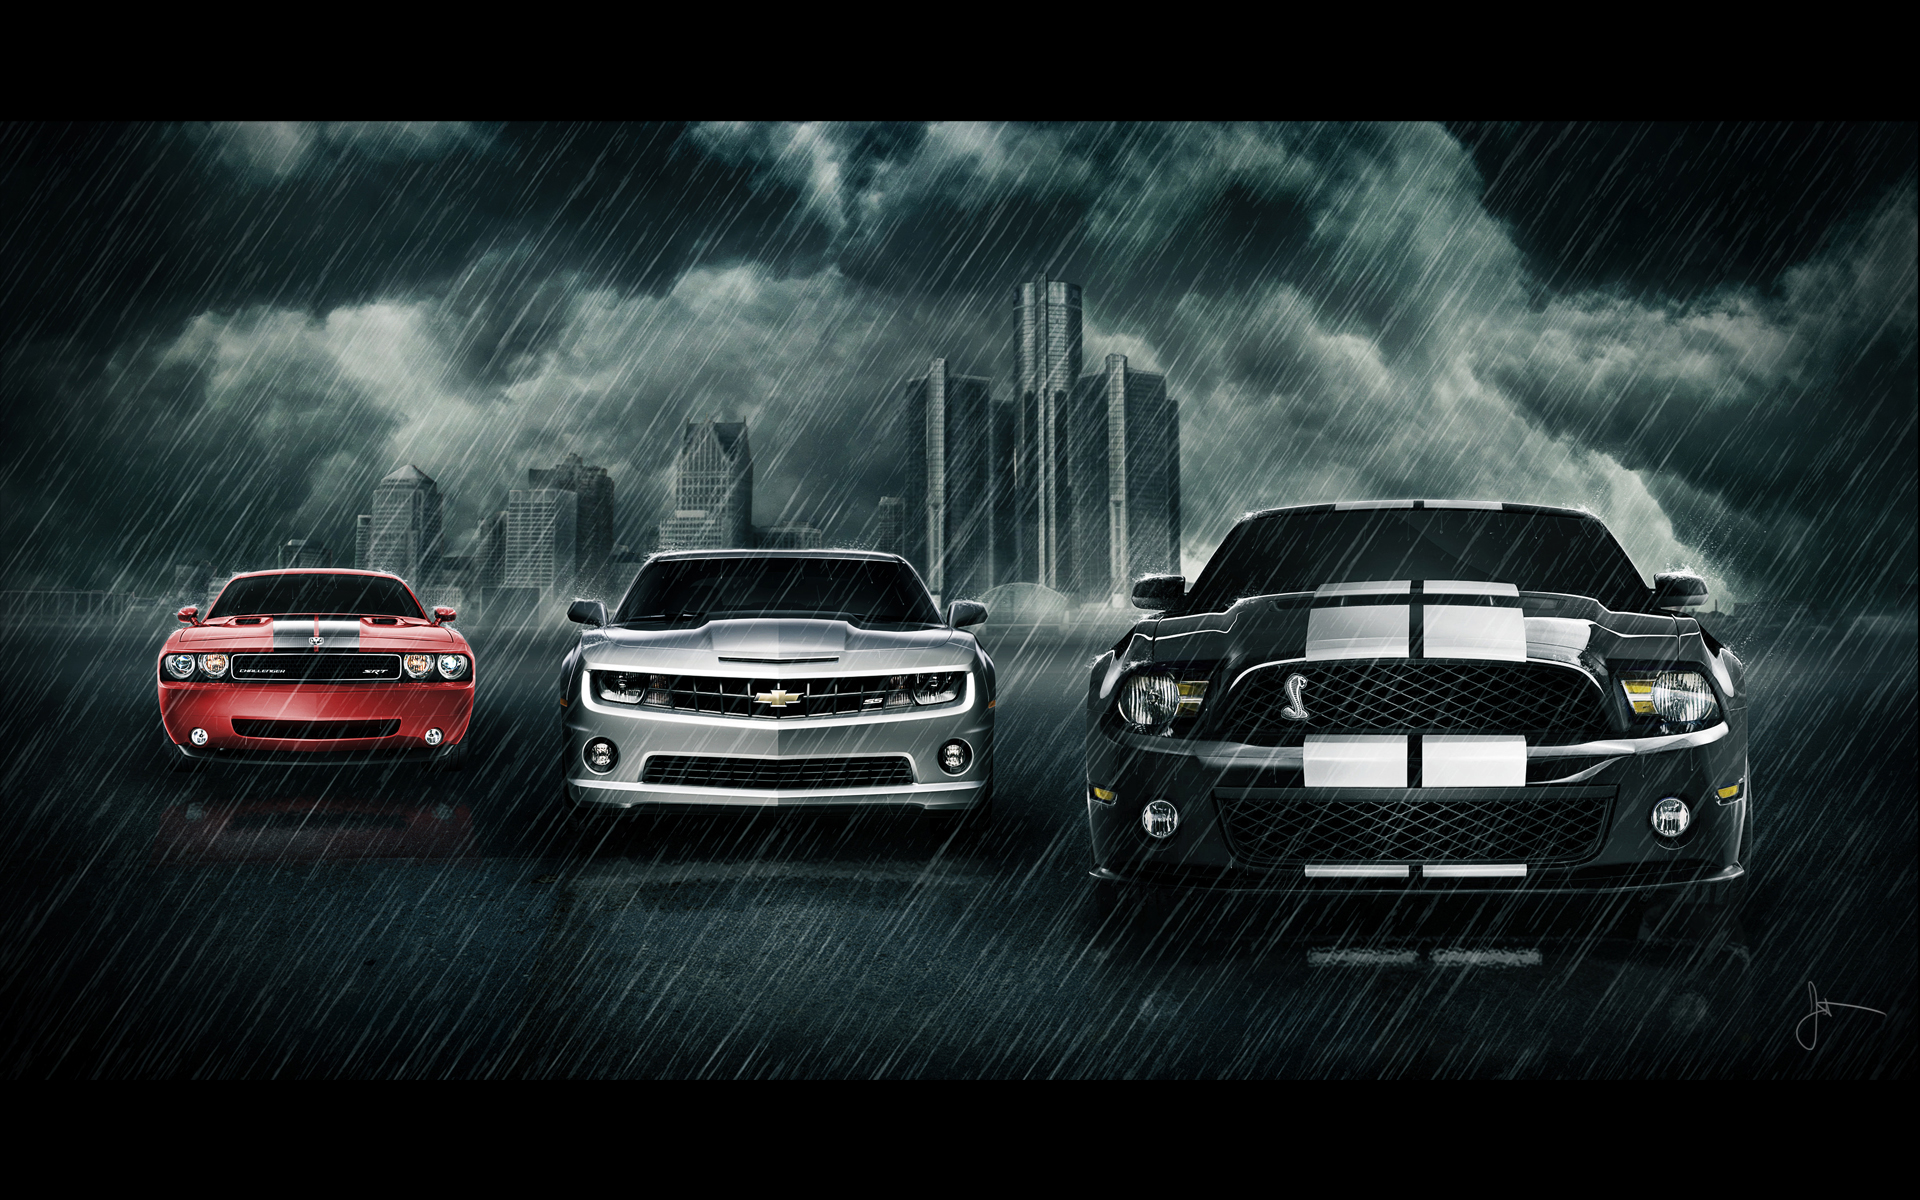 DarkCruz360 Camaro, Challenger, and Mustang